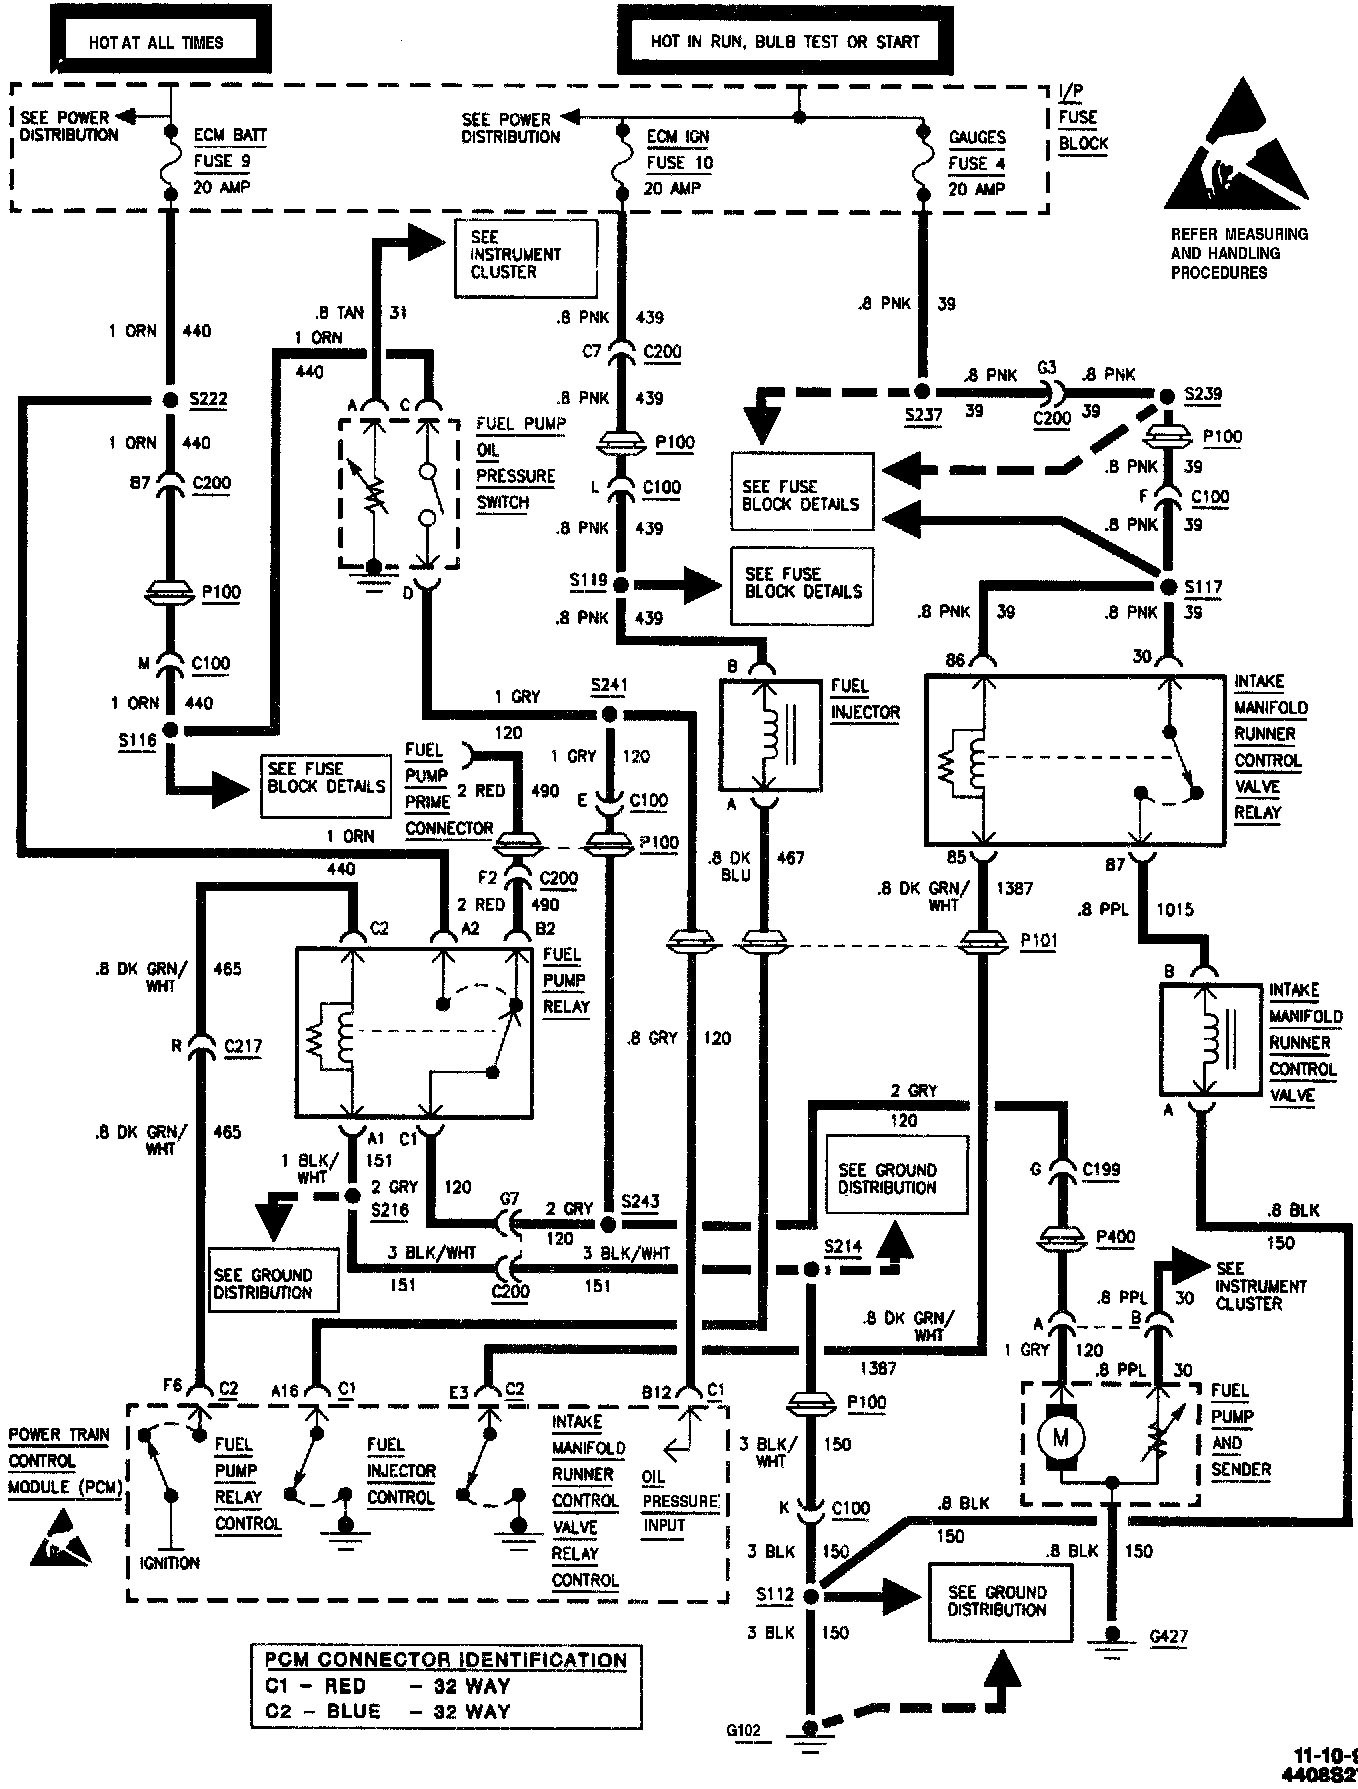 chevrolet s10 wiring diagram in addition air brake system diagram